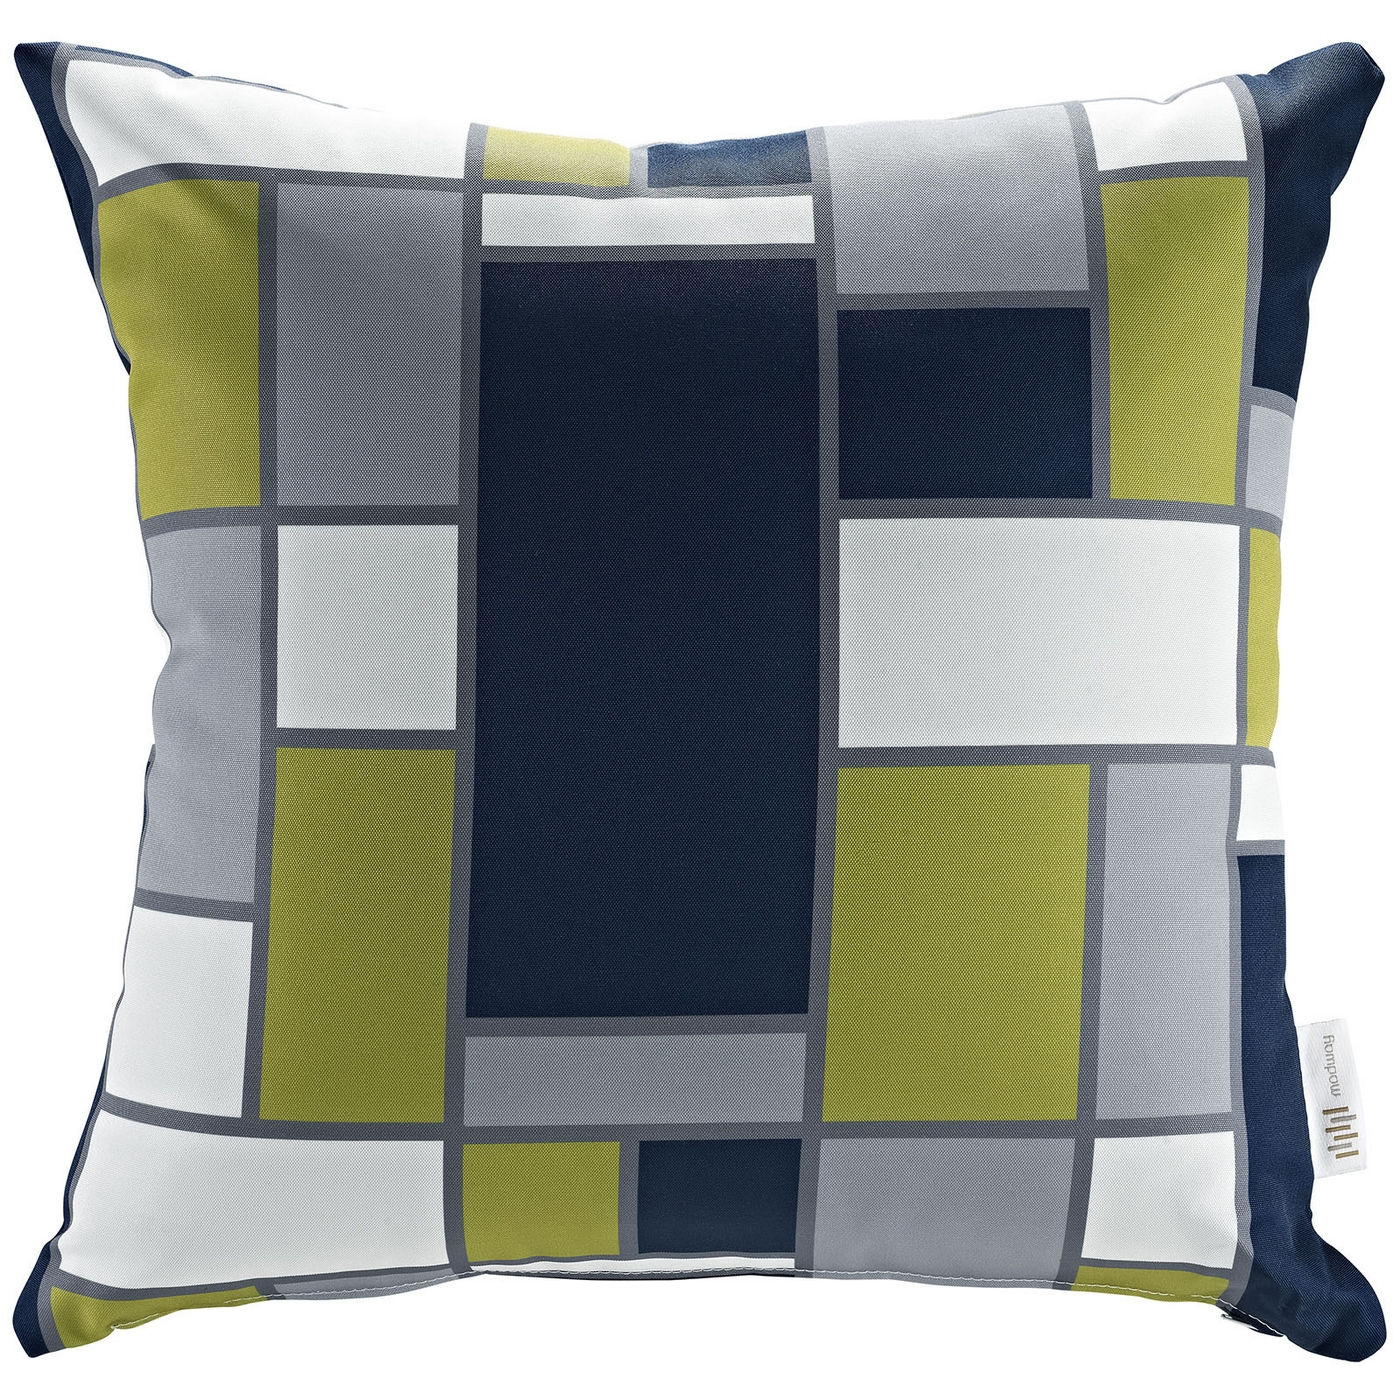 Modway Modern Outdoor Patio Pillow W/patterned Weather Resistant Fabric, Rectangle